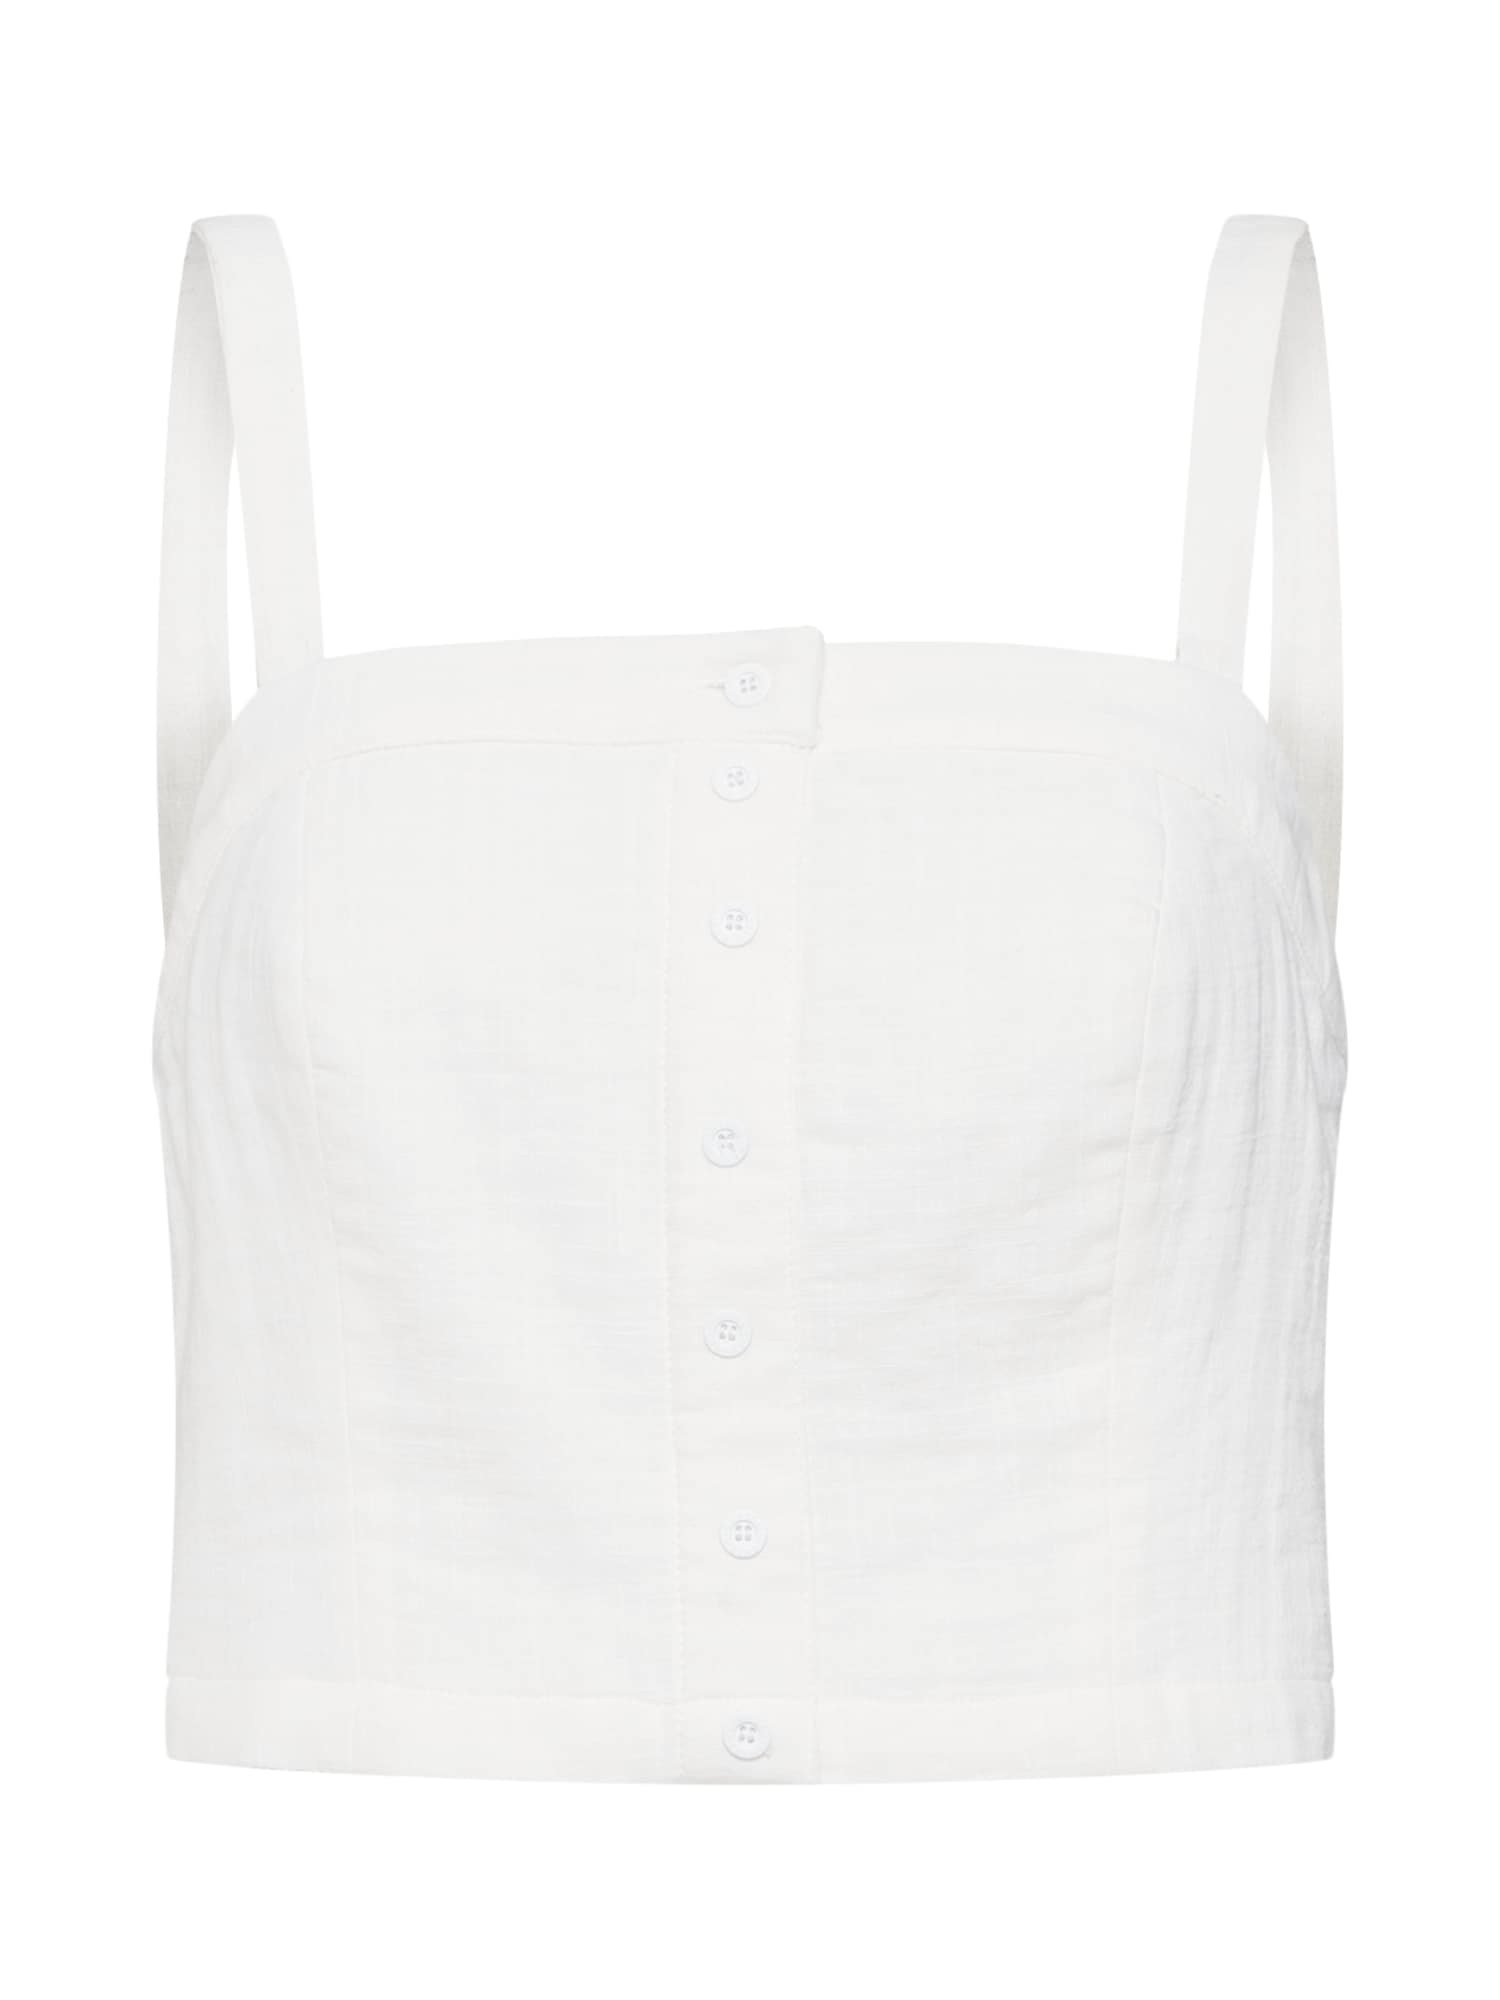 Top CROPPED SMOCK BL offwhite Review